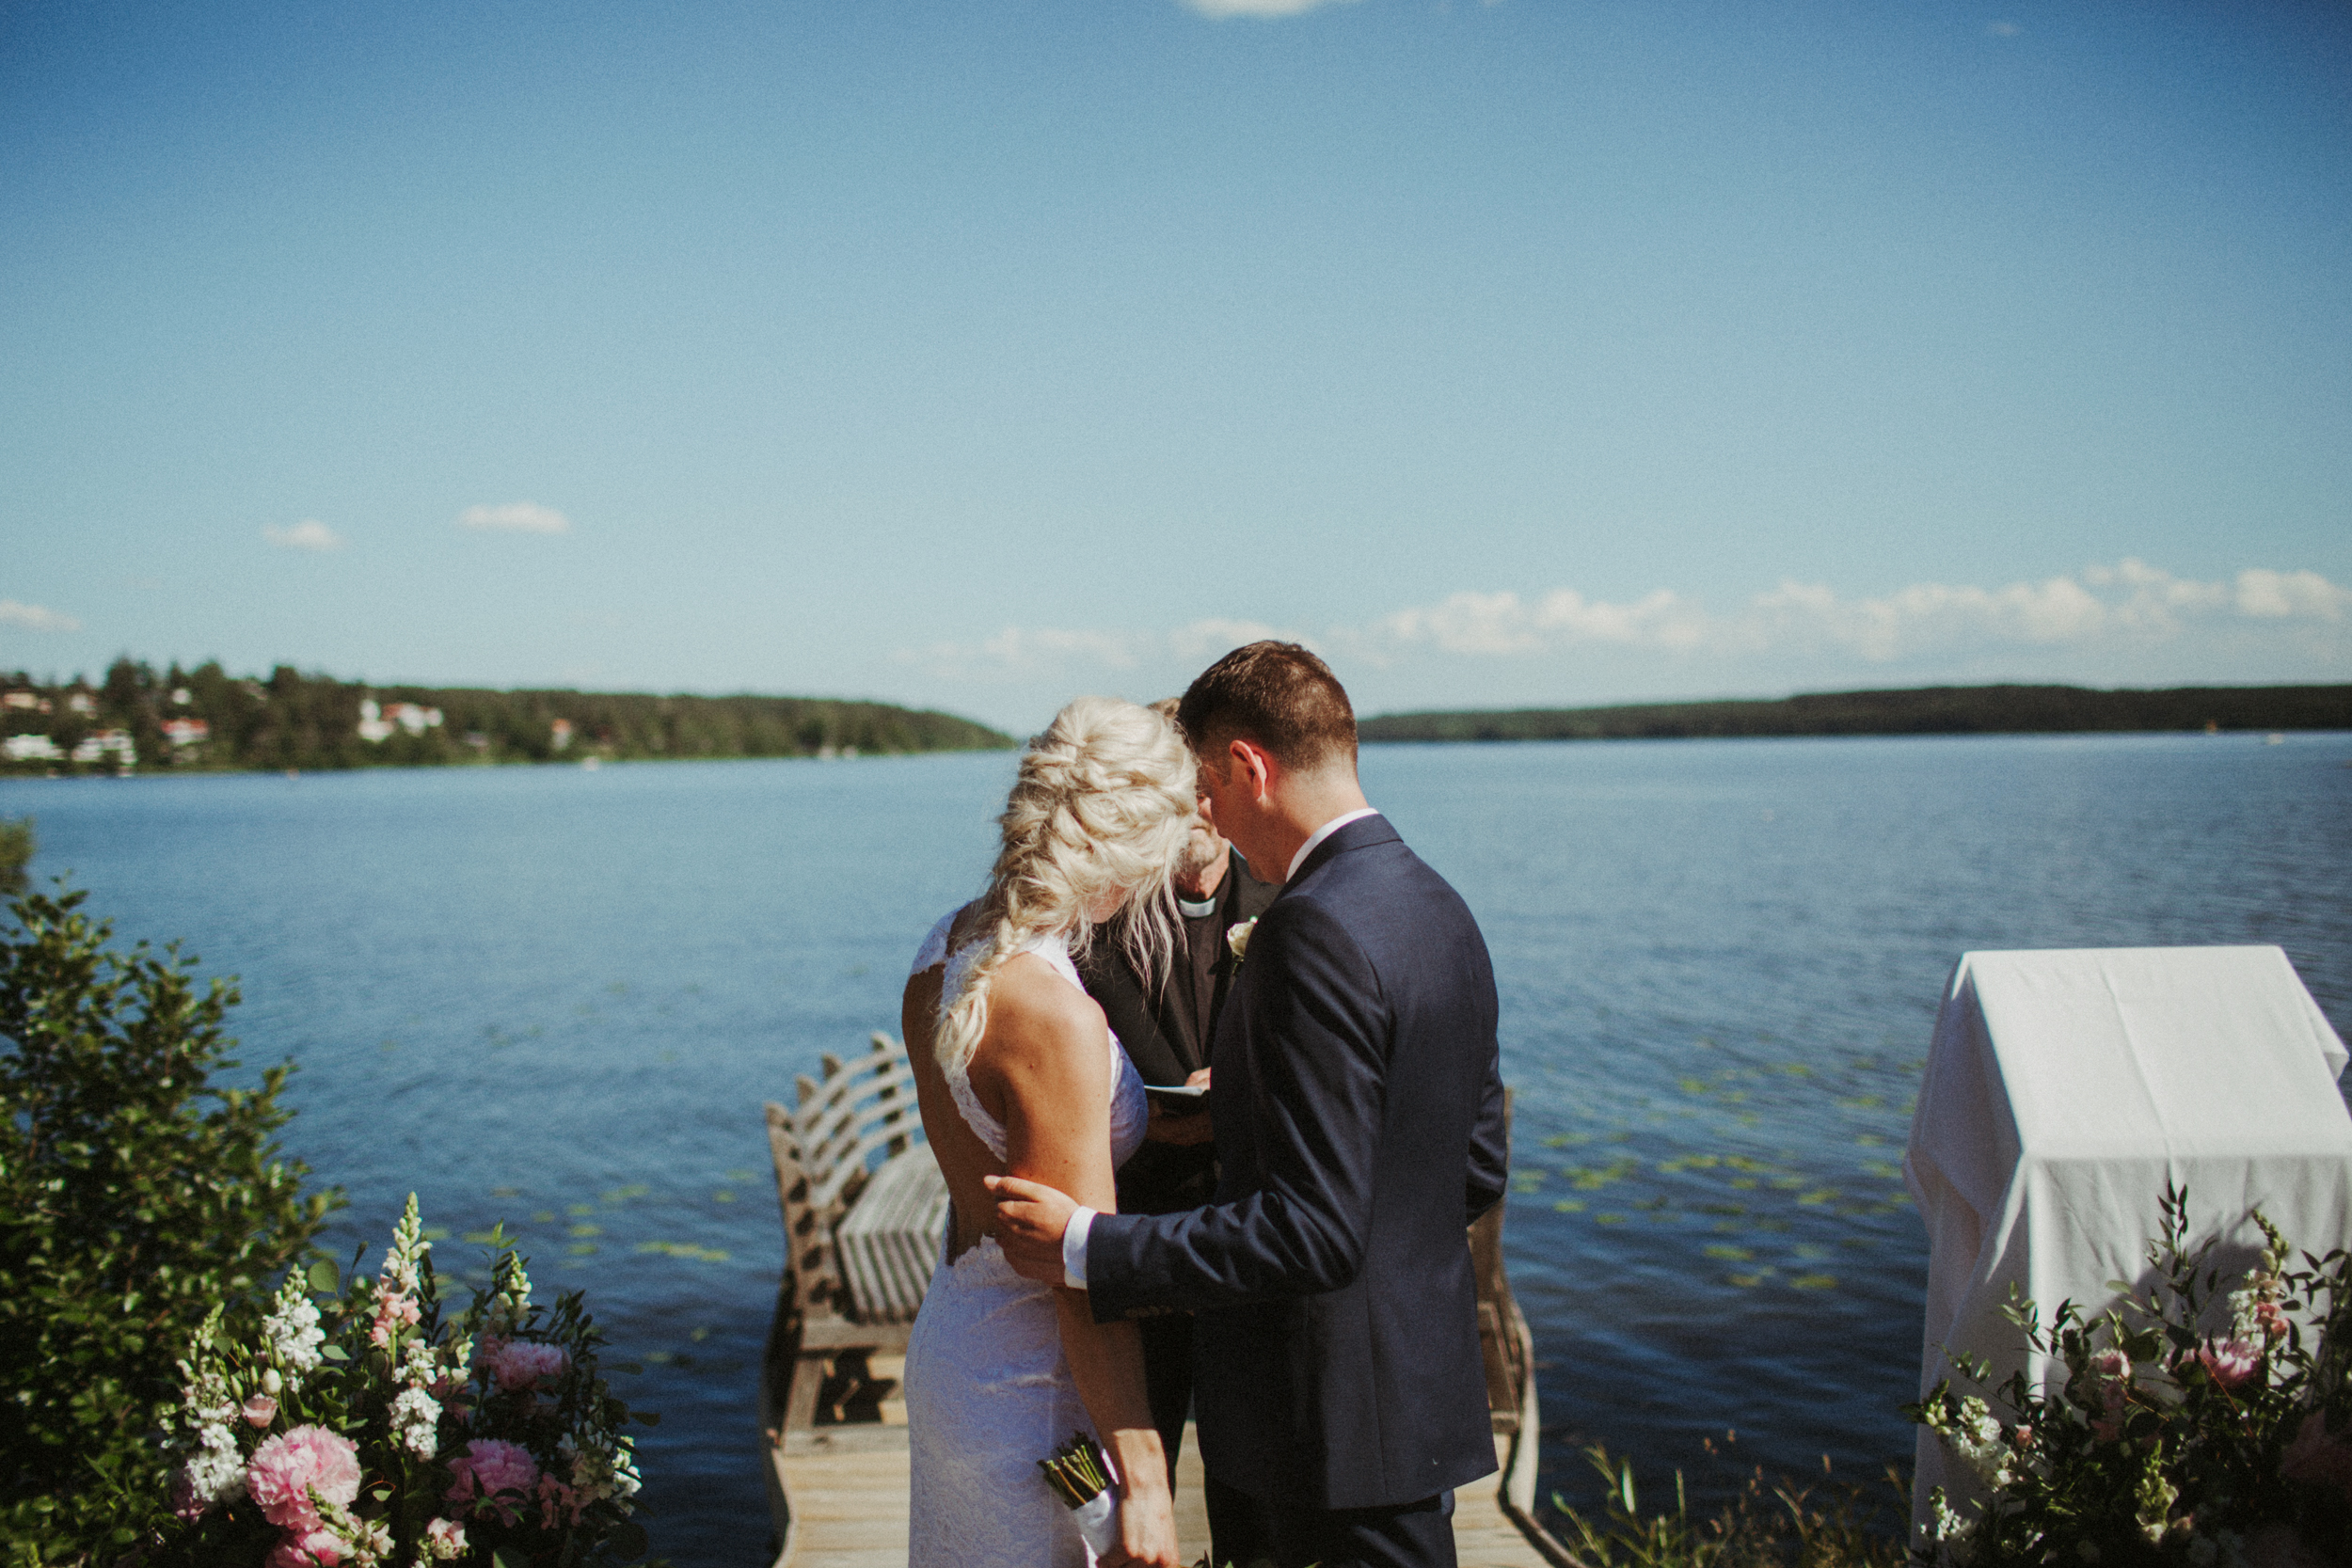 sigtuna-sweden-wedding_m_e-81.jpg